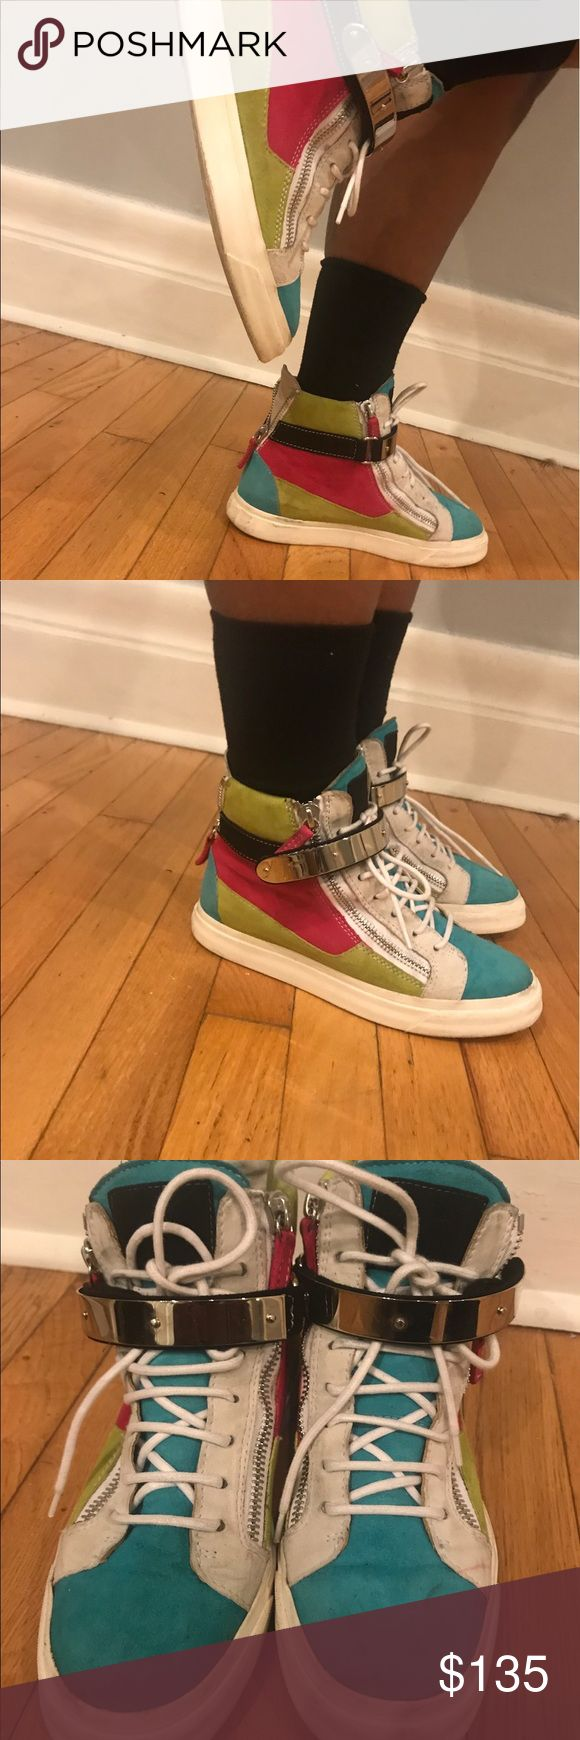 Authentic Giuseppe Zanotti sneaker w/ metal strap Authentic Colorblock Giuseppe Zanotti with metal strap. 7/10 condition. Suede can be cleaned easily.. Giuseppe Zanotti Shoes Lace Up Boots